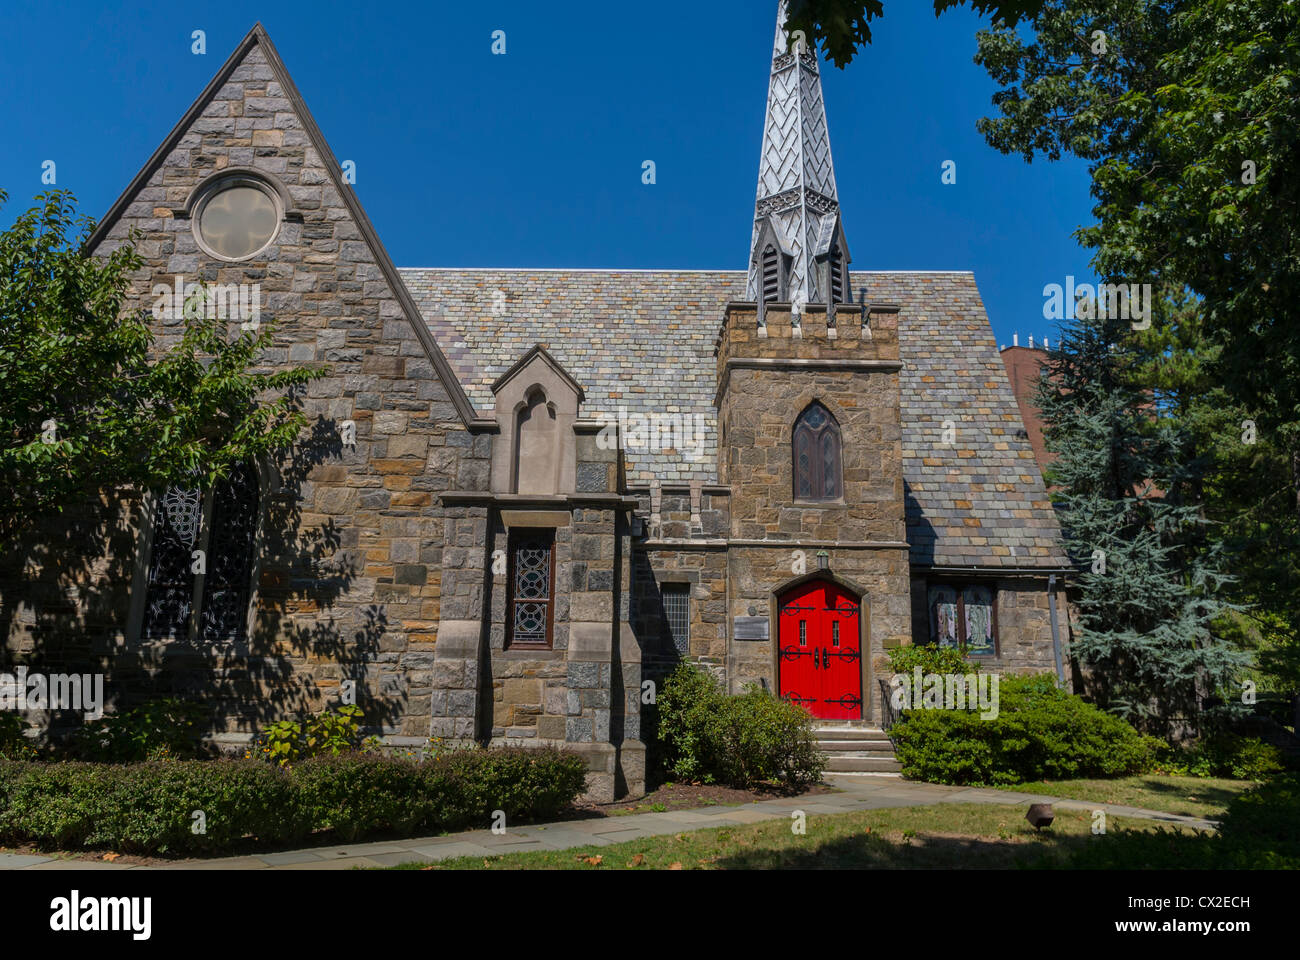 Bronx, New York, NY, STATI UNITI D'AMERICA, Fieldston Historic District, 'Riverdale Presbyterian Church', Immagini Stock